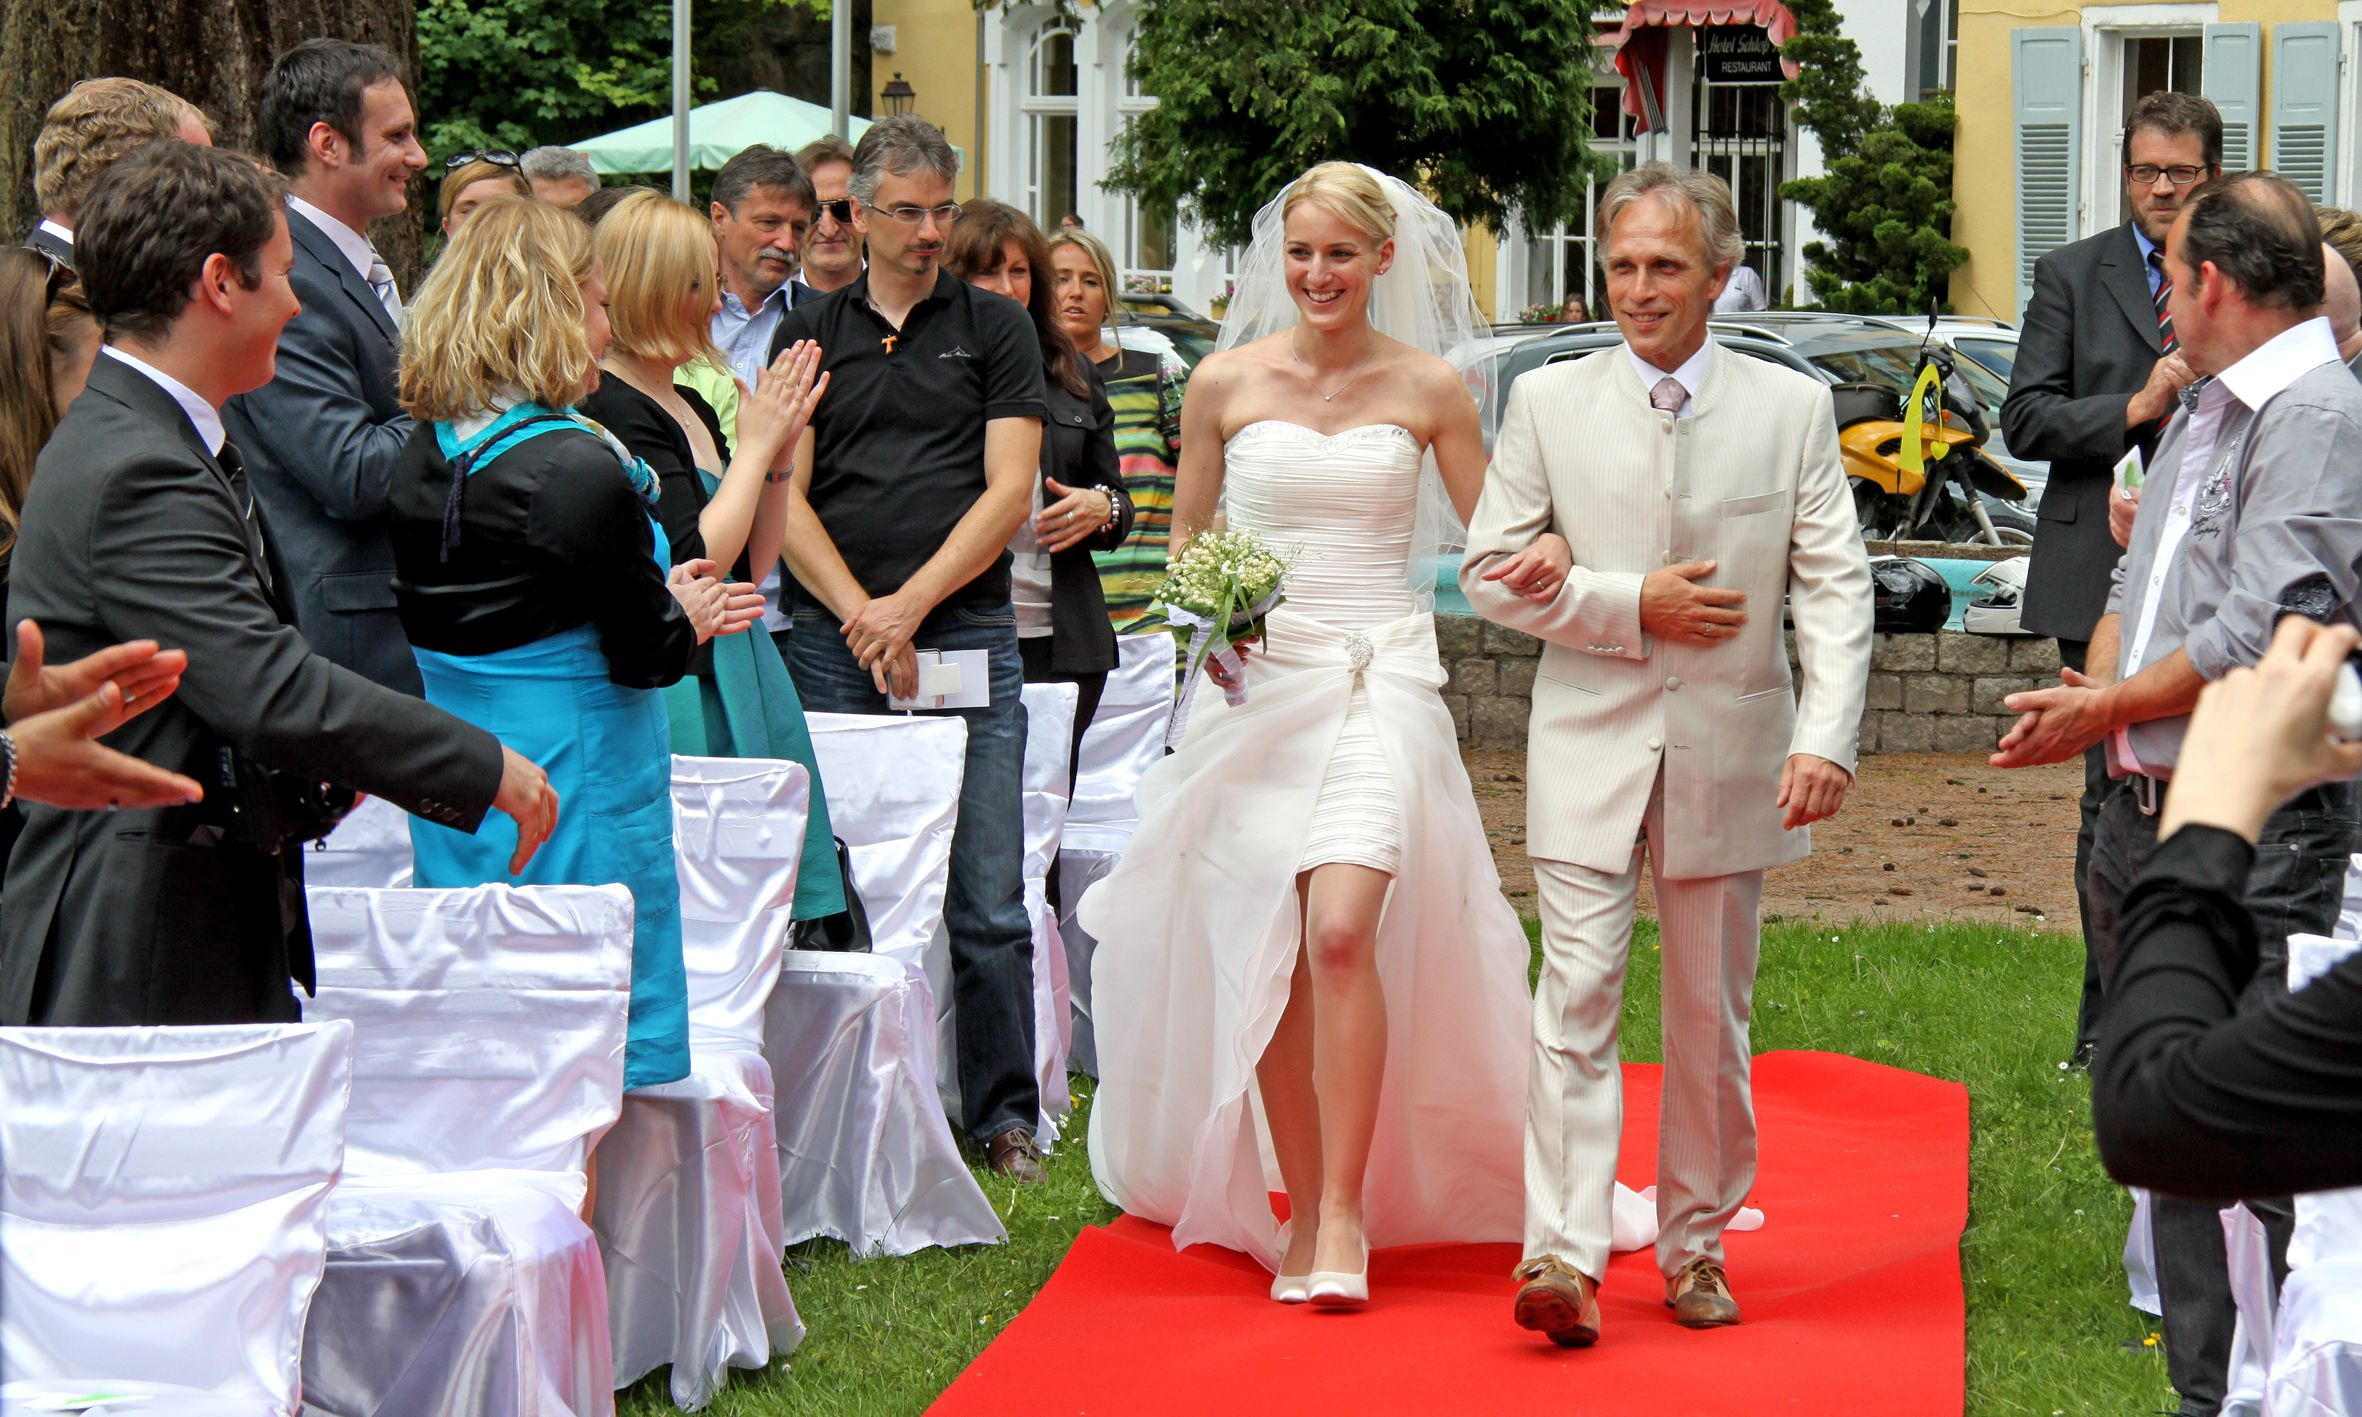 Roter Teppich Für Party Roter Teppich Hochzeit Great Roter Teppich Roter Teppich